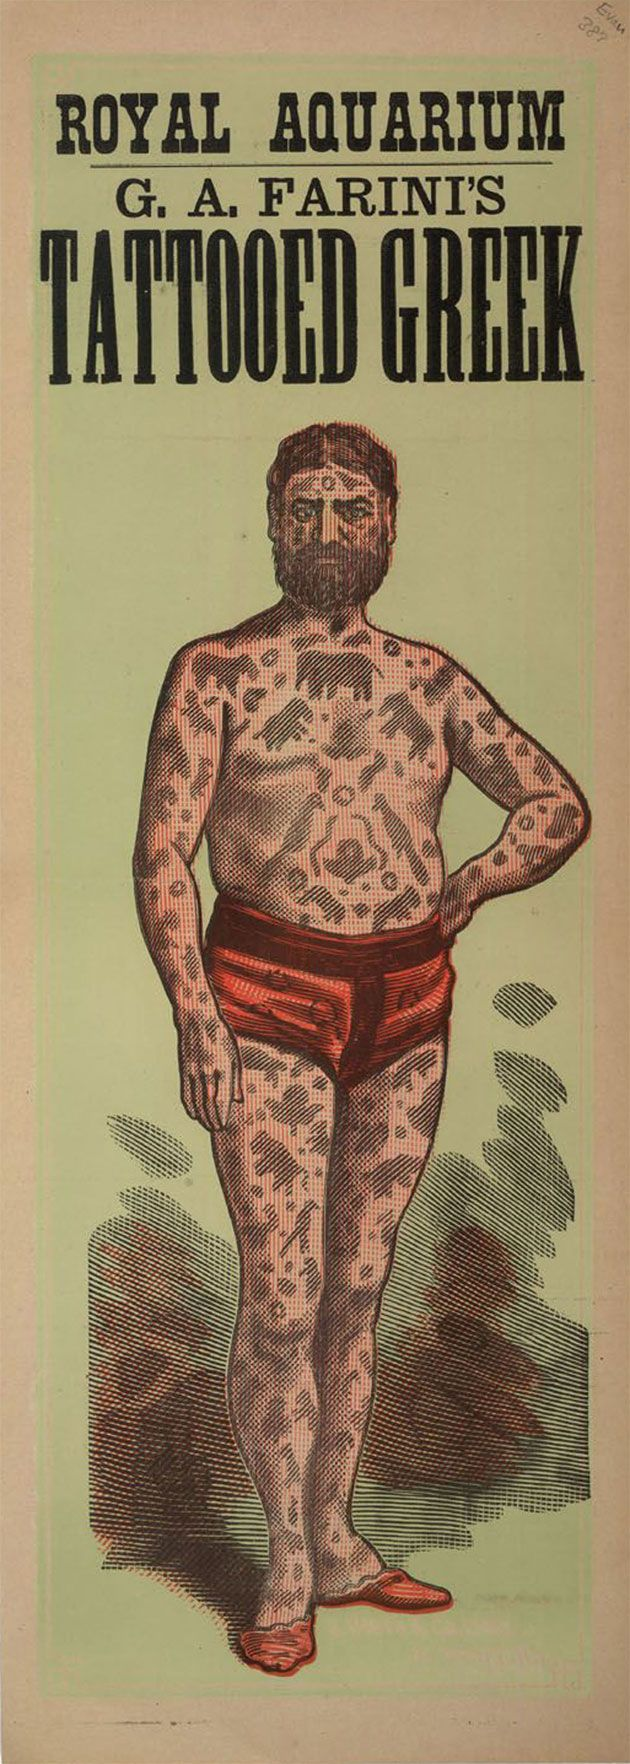 G.A.Farini's Tattooed Greek, 1880; The British Library Board